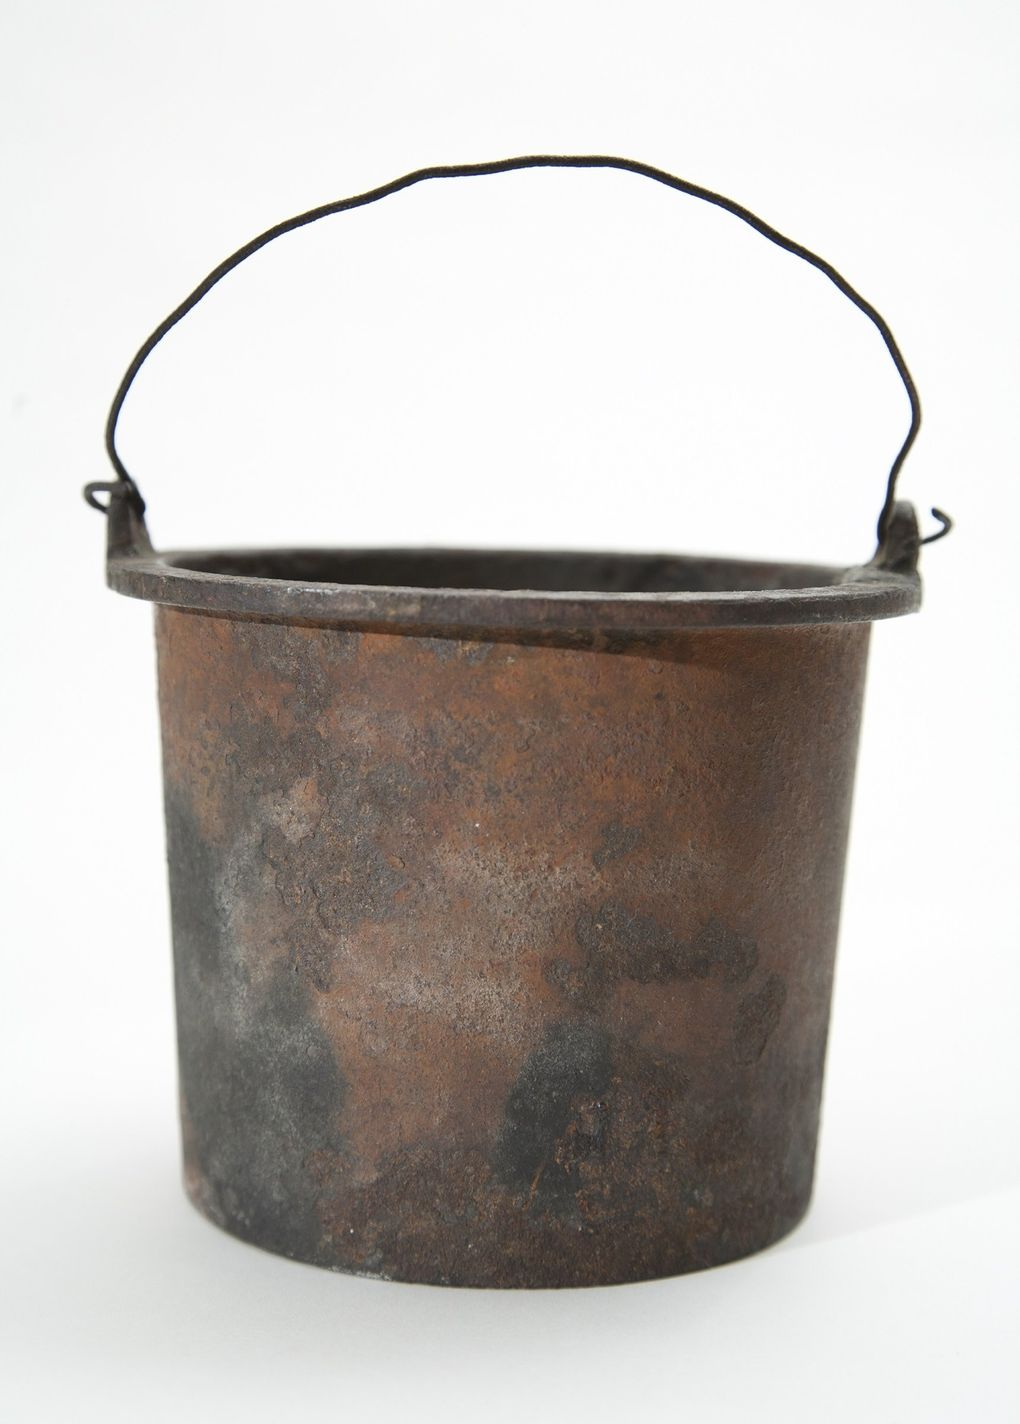 """The glue pot that started the """"Great Seattle Fire"""" in June 1889 is on display at MOHAI. (Courtesy of MOHAI)"""